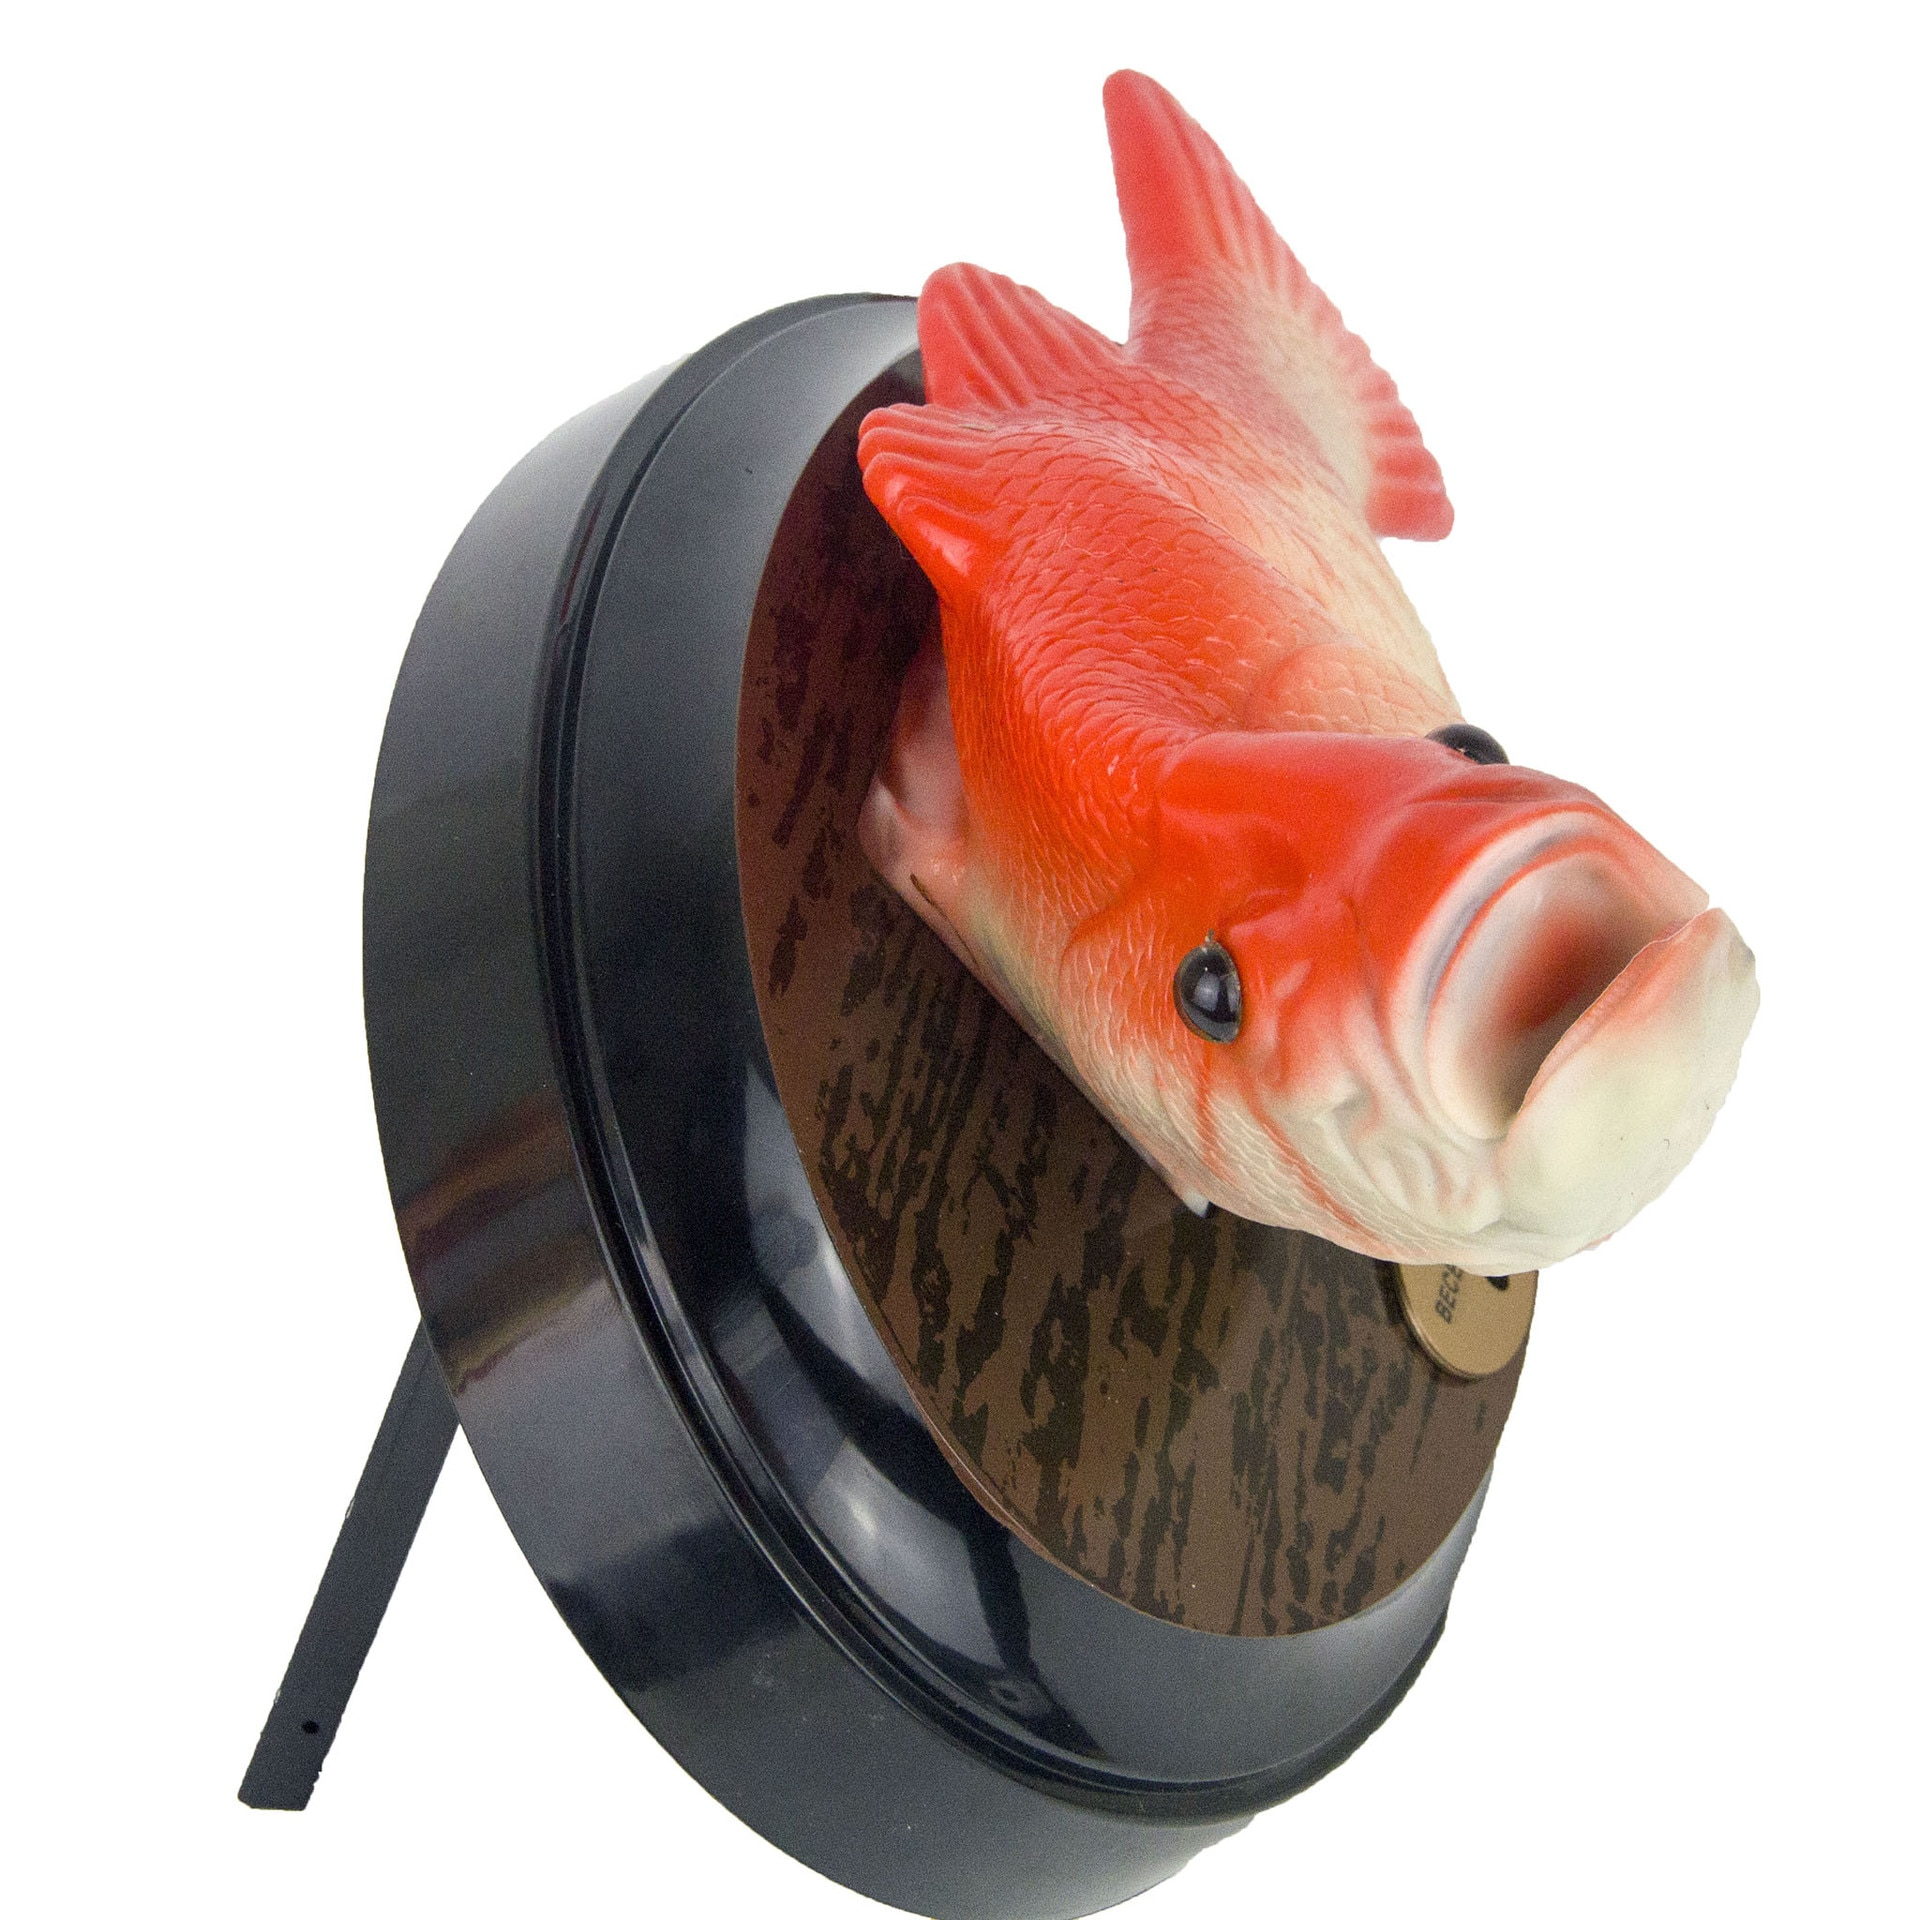 Singing Salmon Sing Beating Plastic Fish Novelty Spoof Halloween Electric Toy enlarge